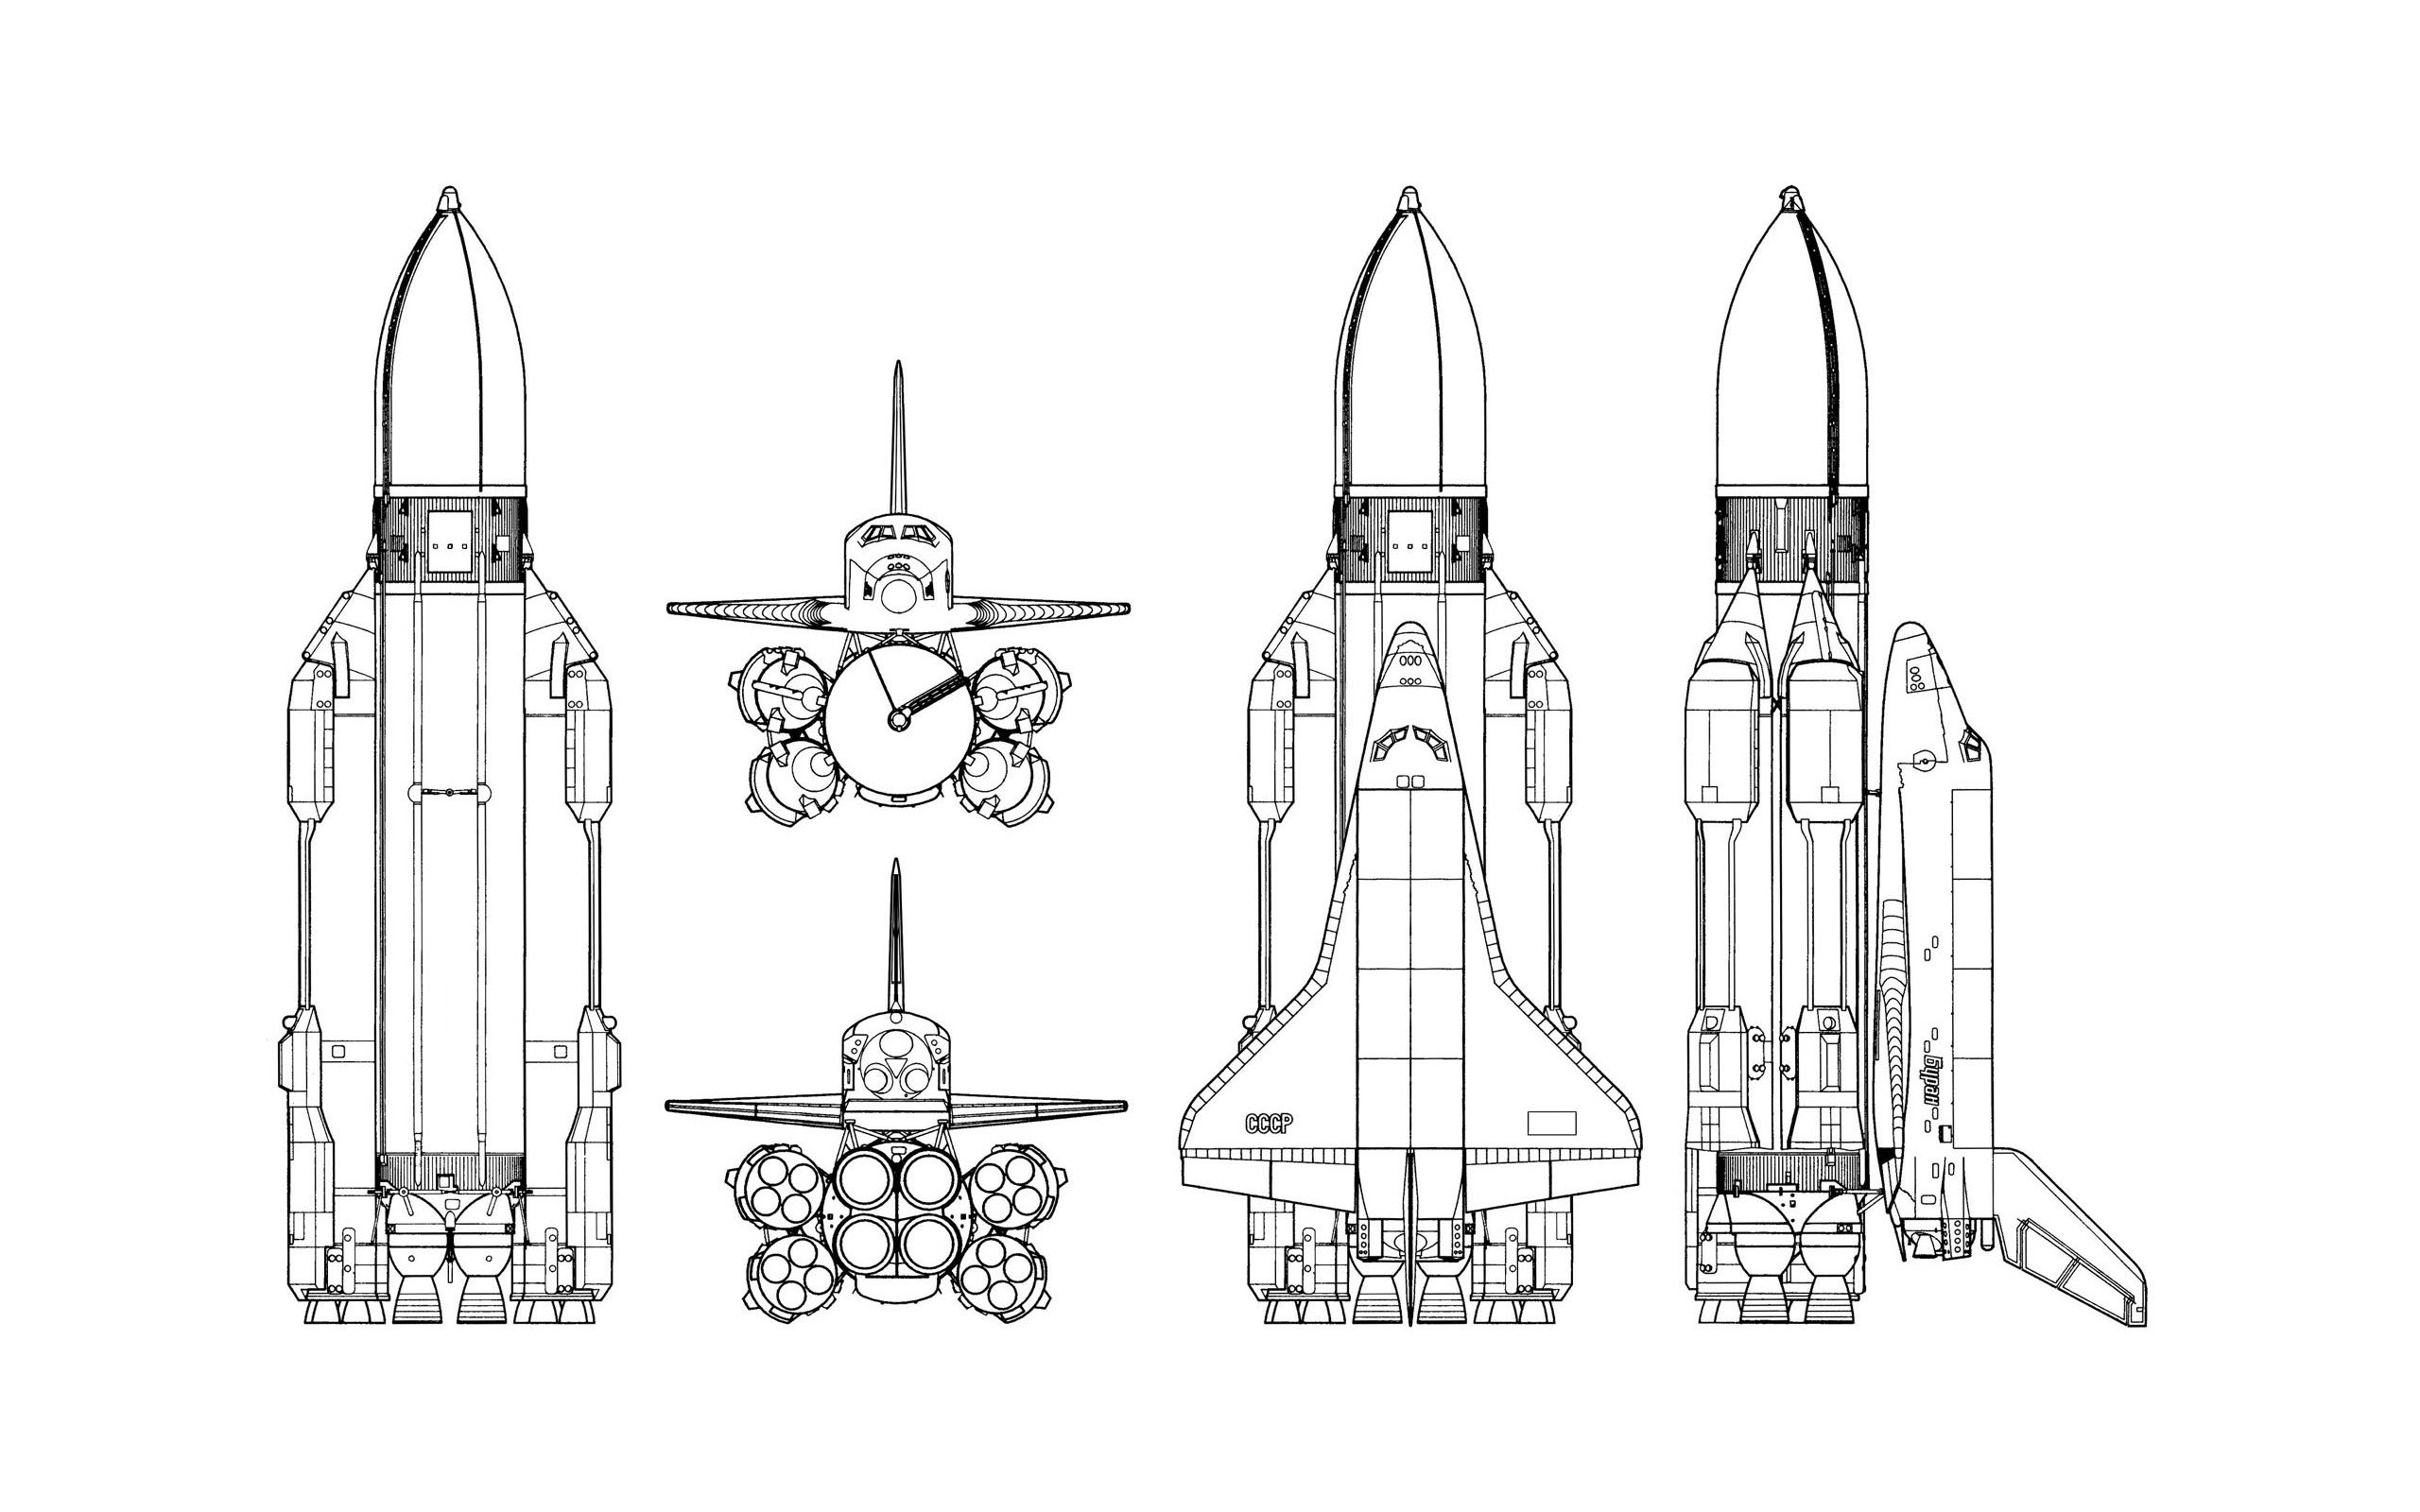 space shuttle, USSR, Rockets, Simple background, Schematic